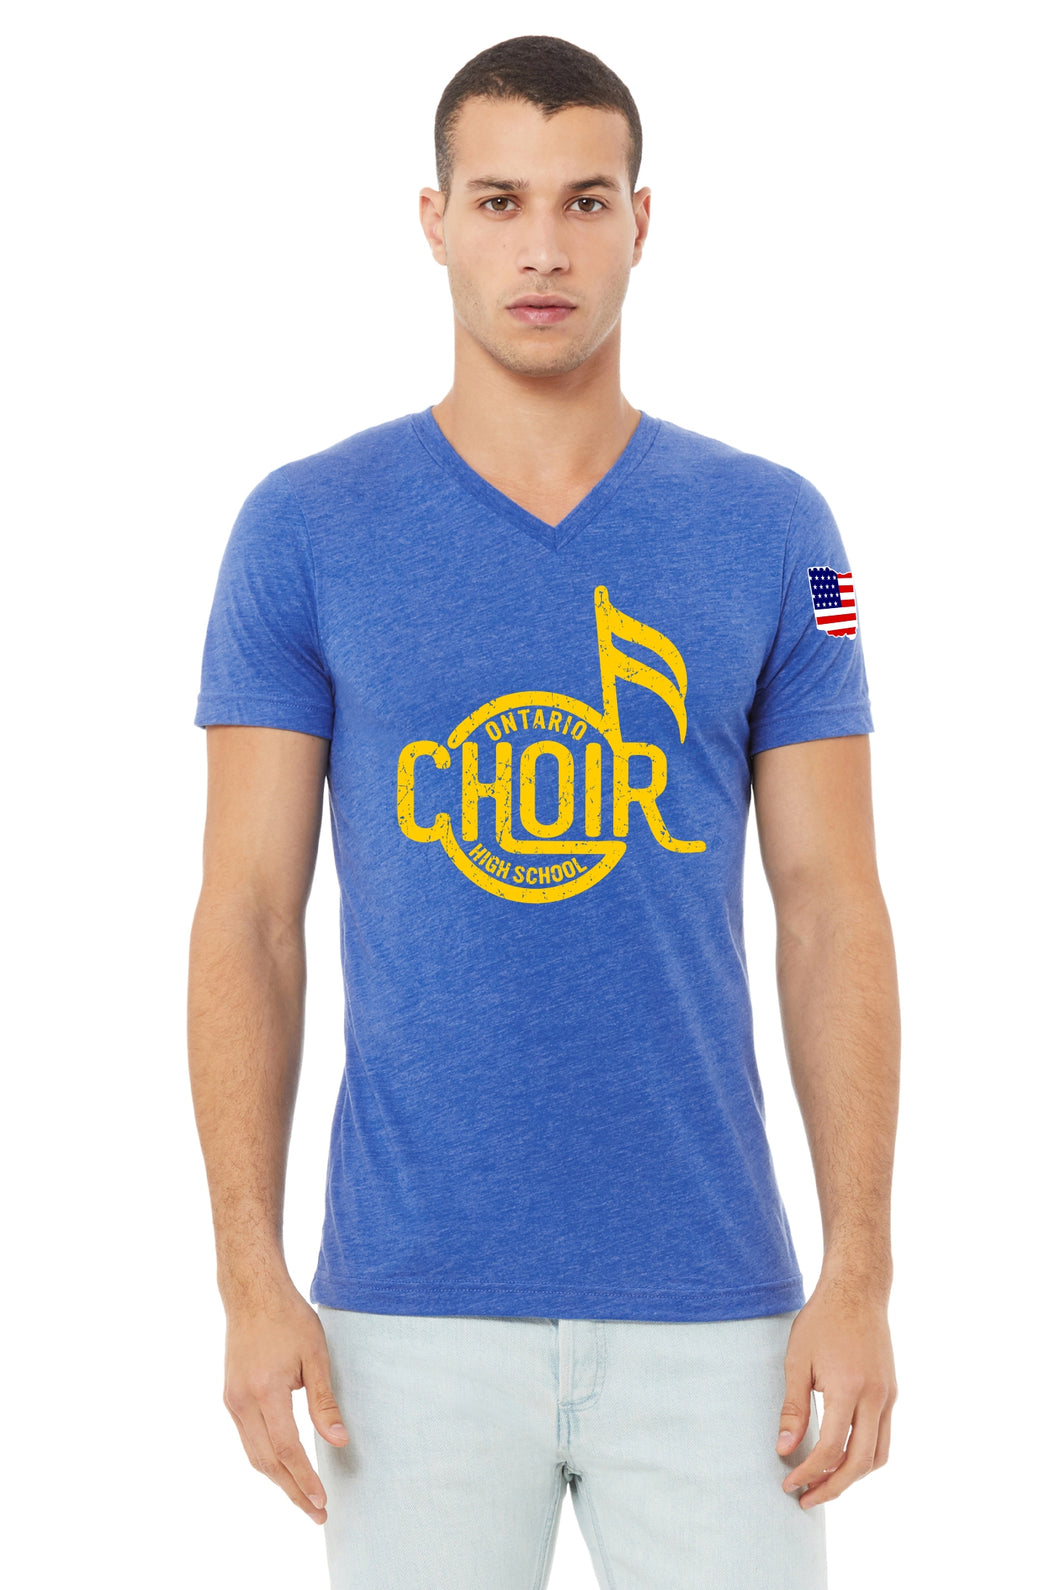 Choir V Neck